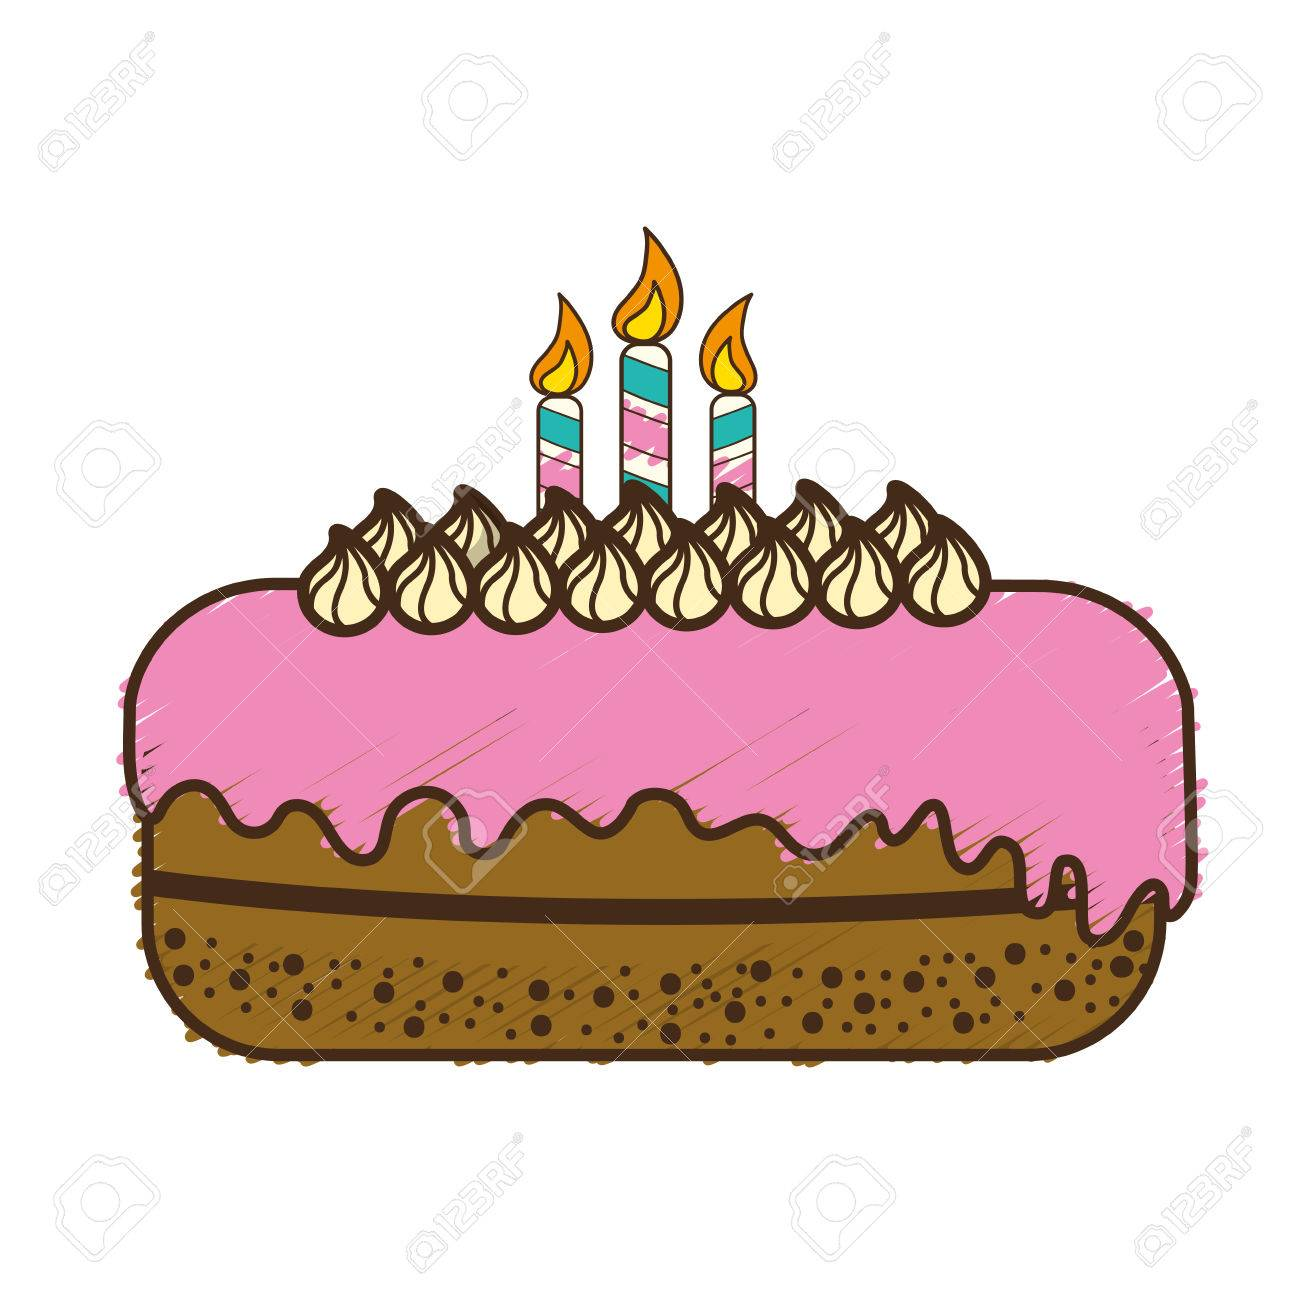 Delicious Pastel With Candles To Happy Birthday Vector Illustration Stock